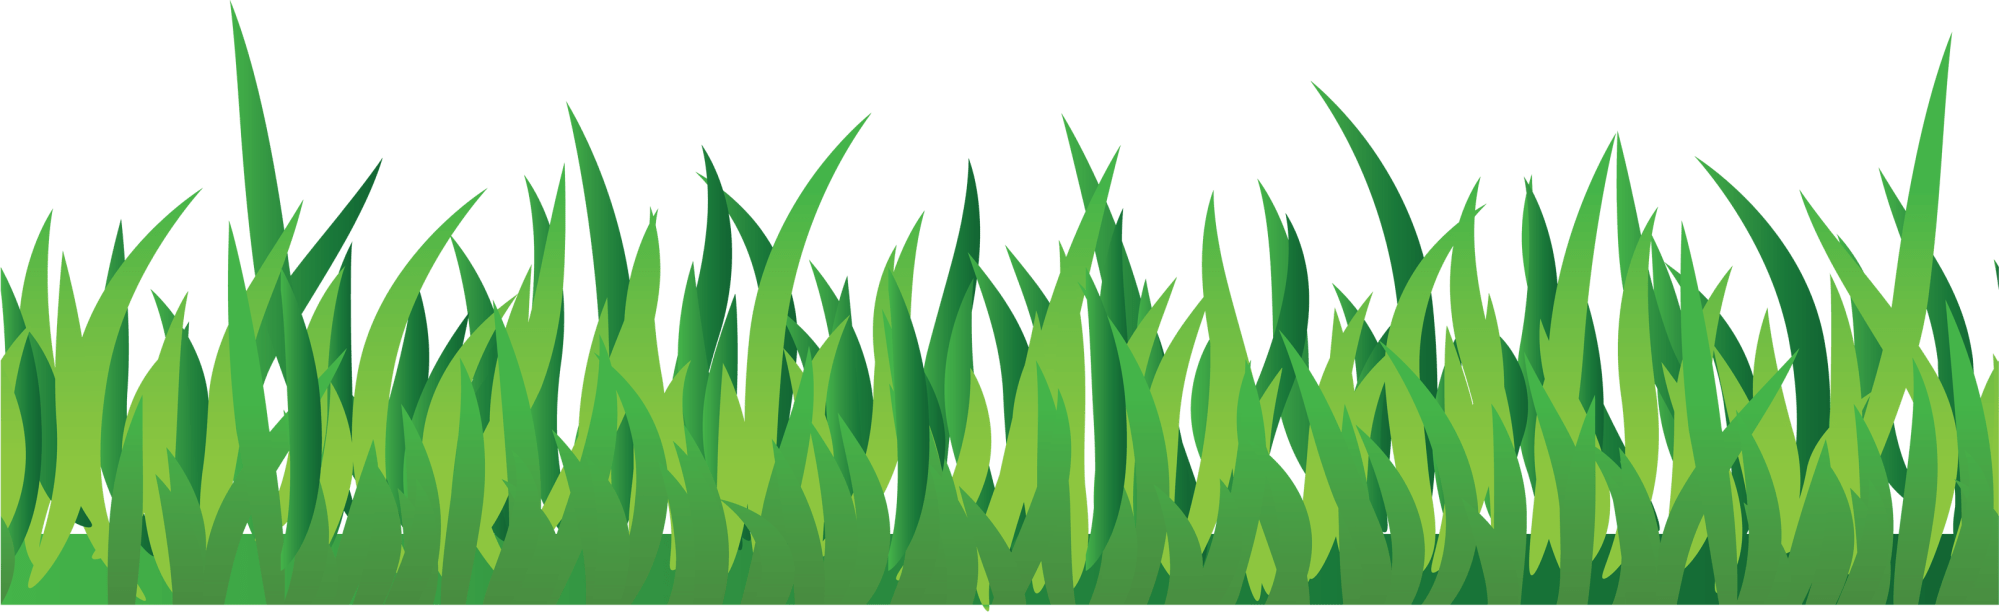 hight resolution of grass png image green grass png picture